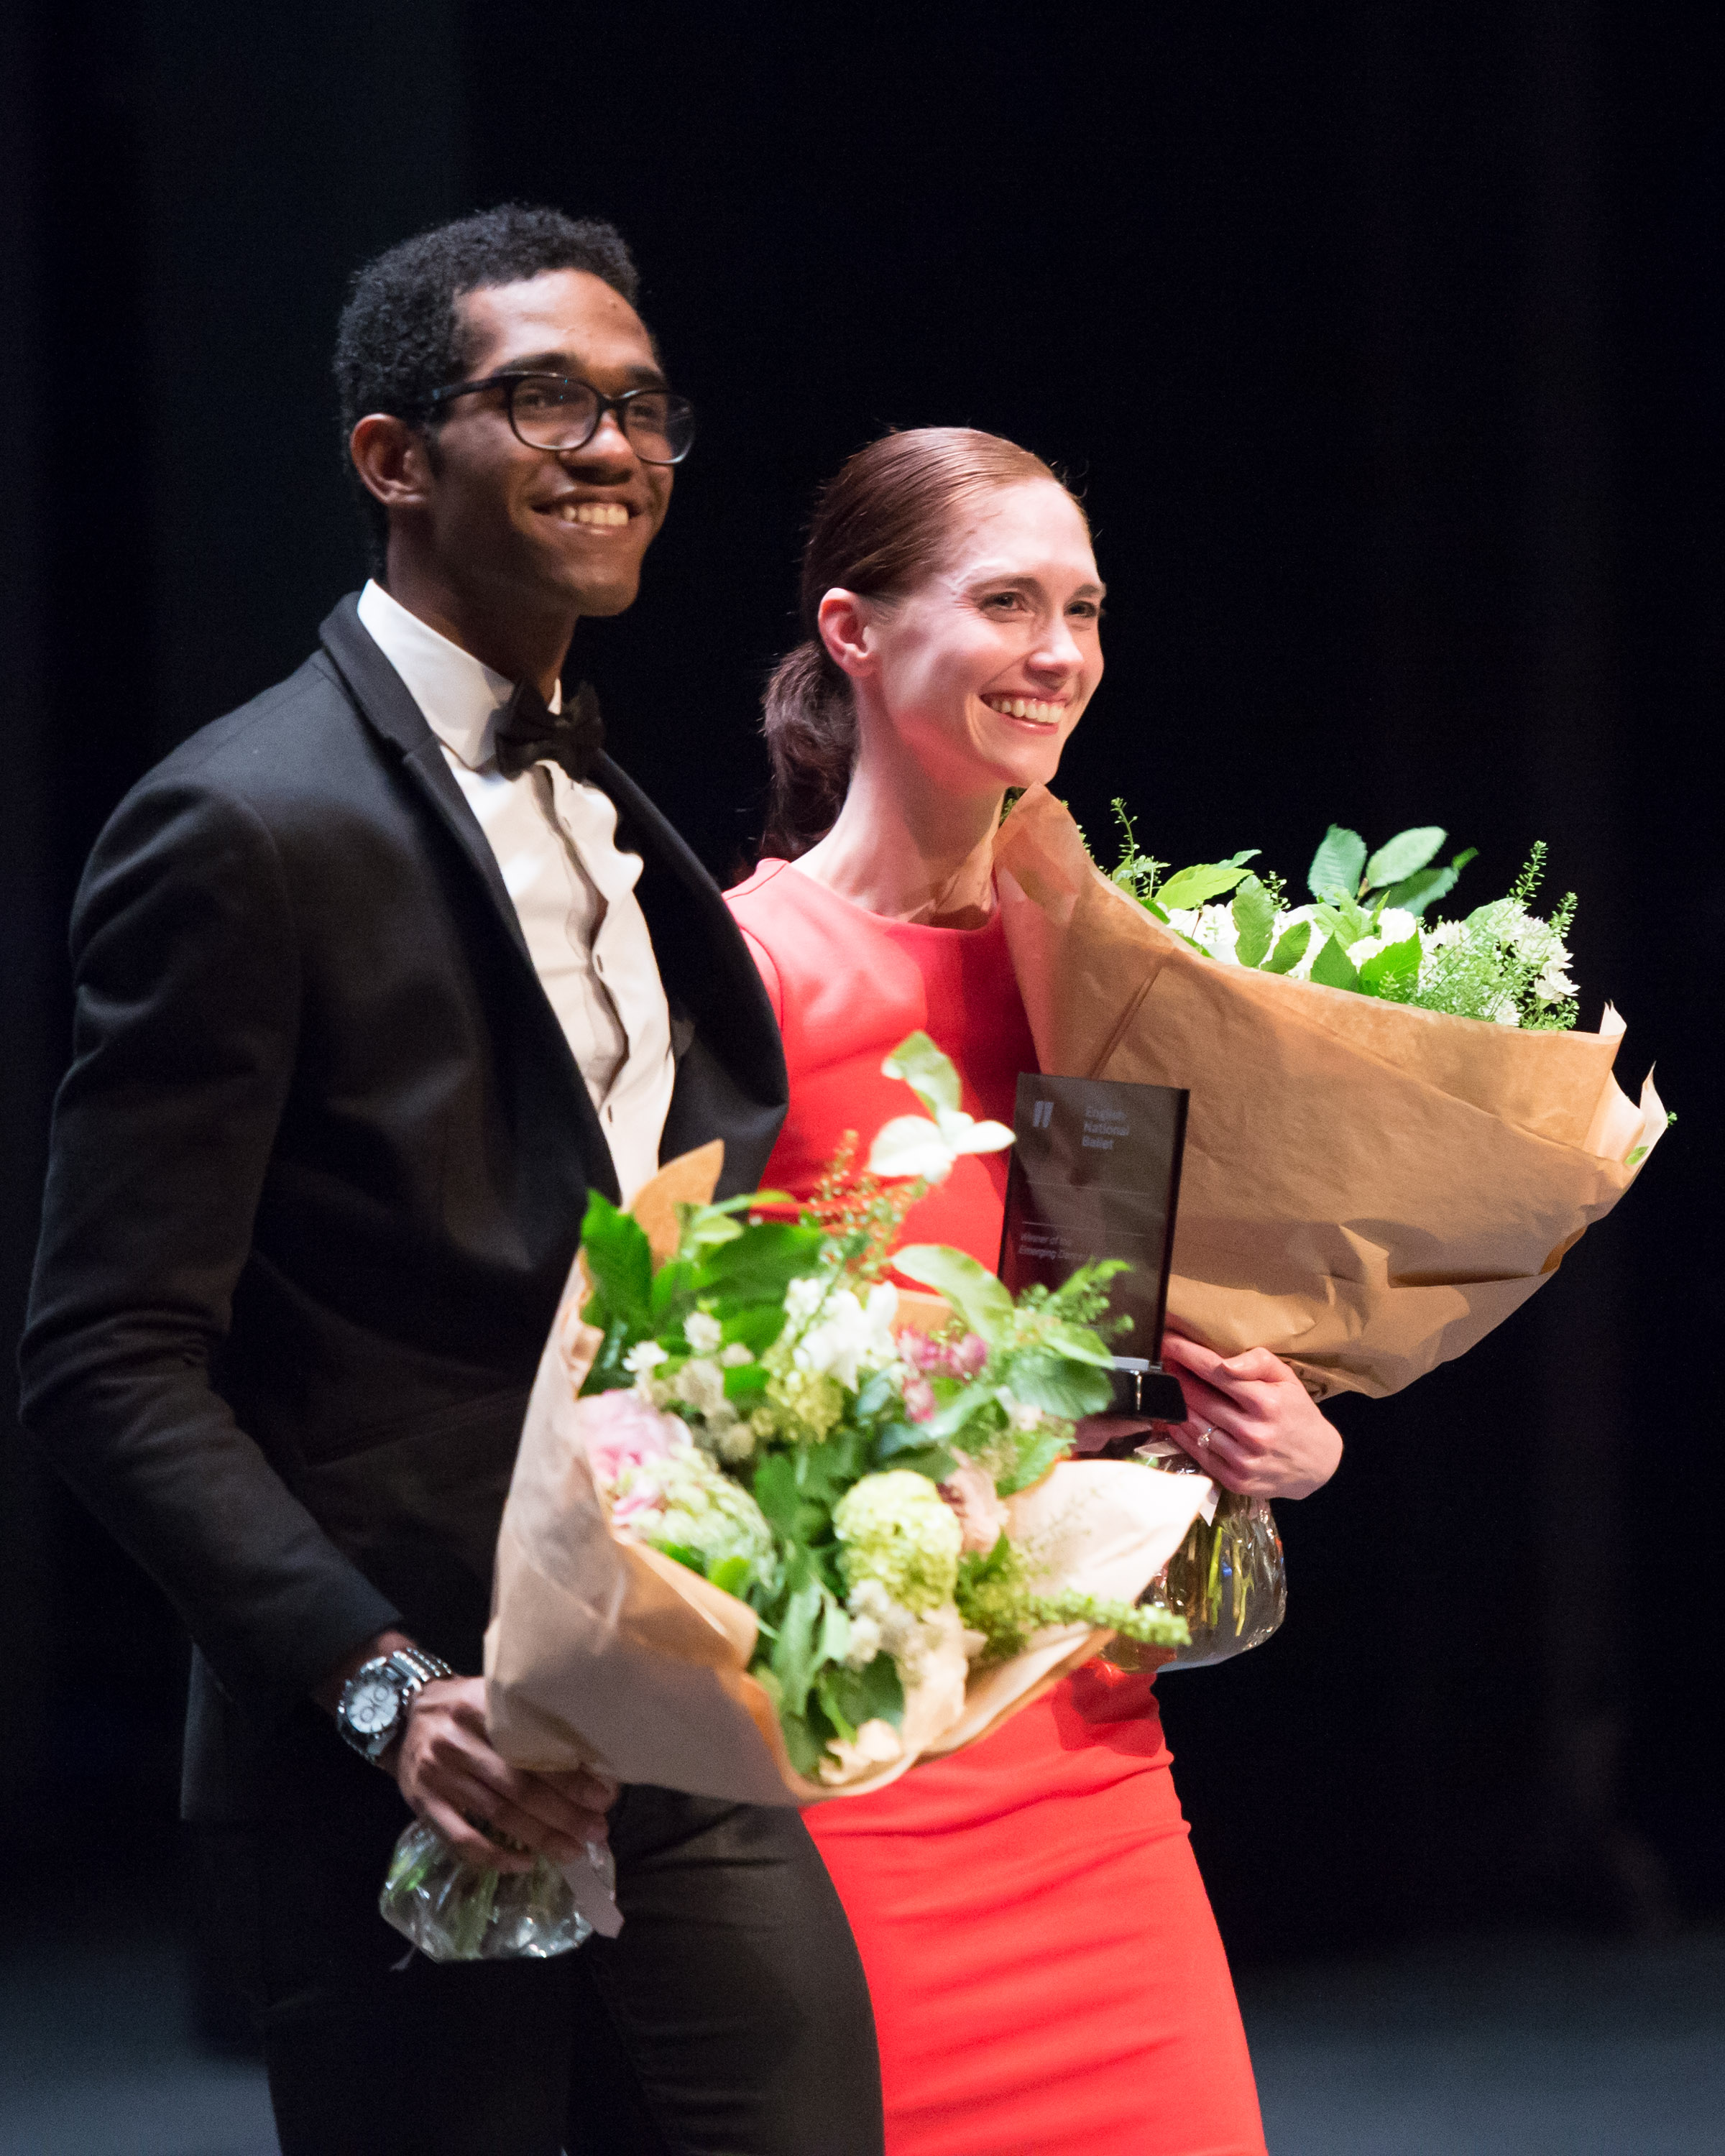 English National Ballet's 'Emerging Dancer' 2014 joint winners Junor Souza and Alison McWhinney (Photography by ASH)